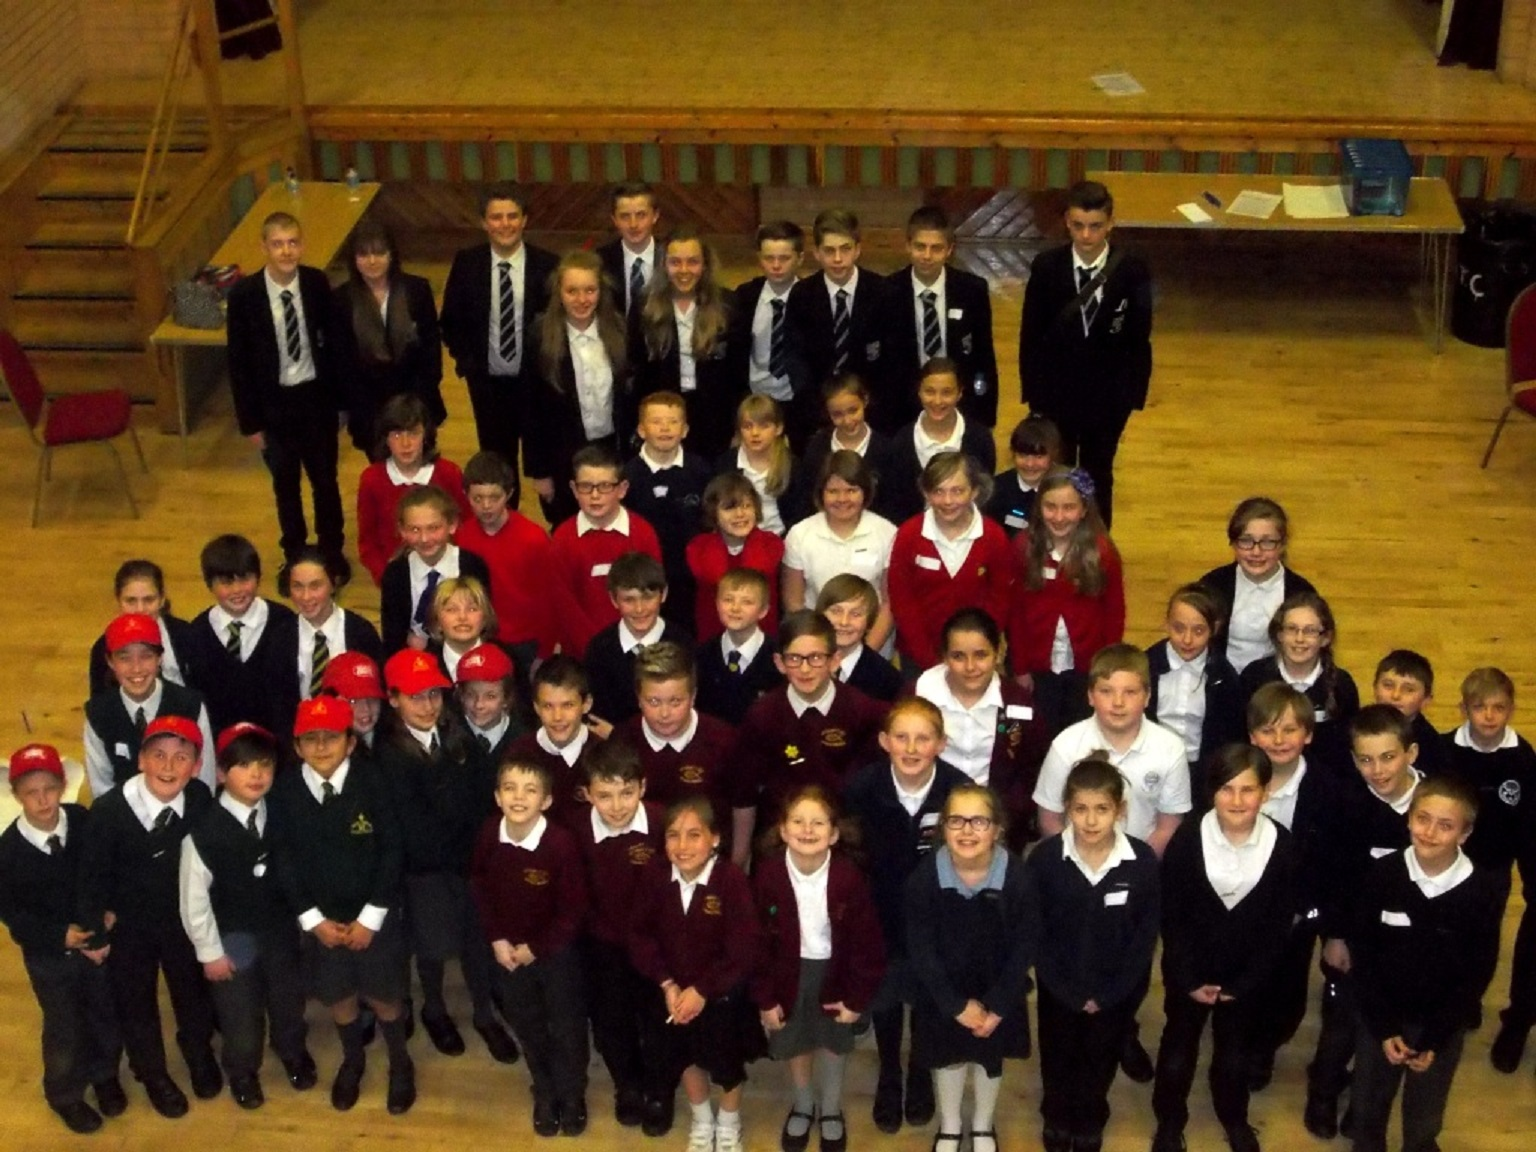 Pupils who attended the conference